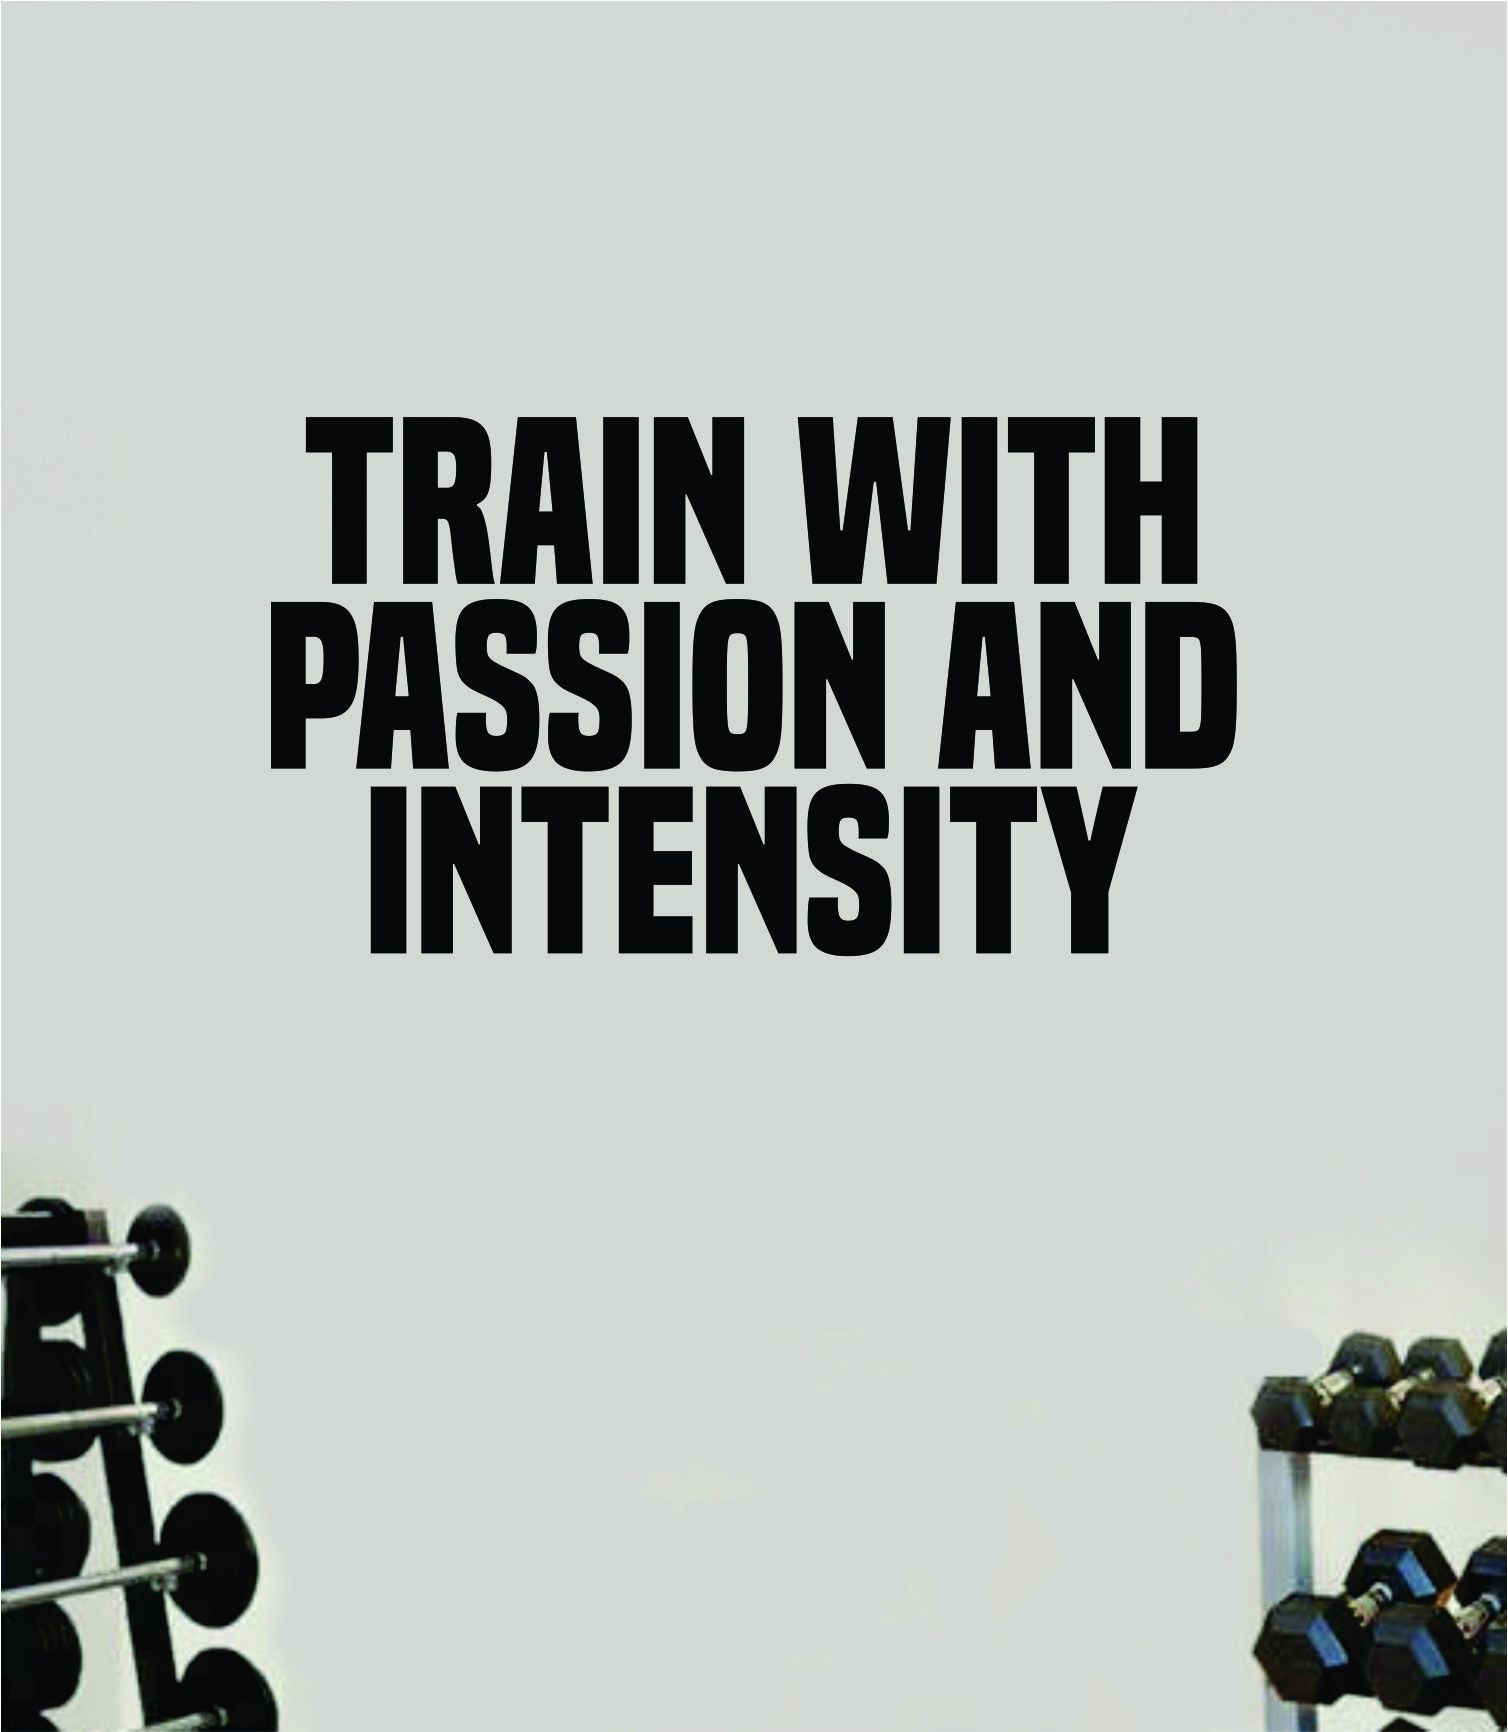 Train With Passion Intensity Gym Fitness Wall Decal Home Decor Bedroom Room Vinyl Sticker Teen Art Quote Beast Lift Strong Inspirational Motivational Health School - green